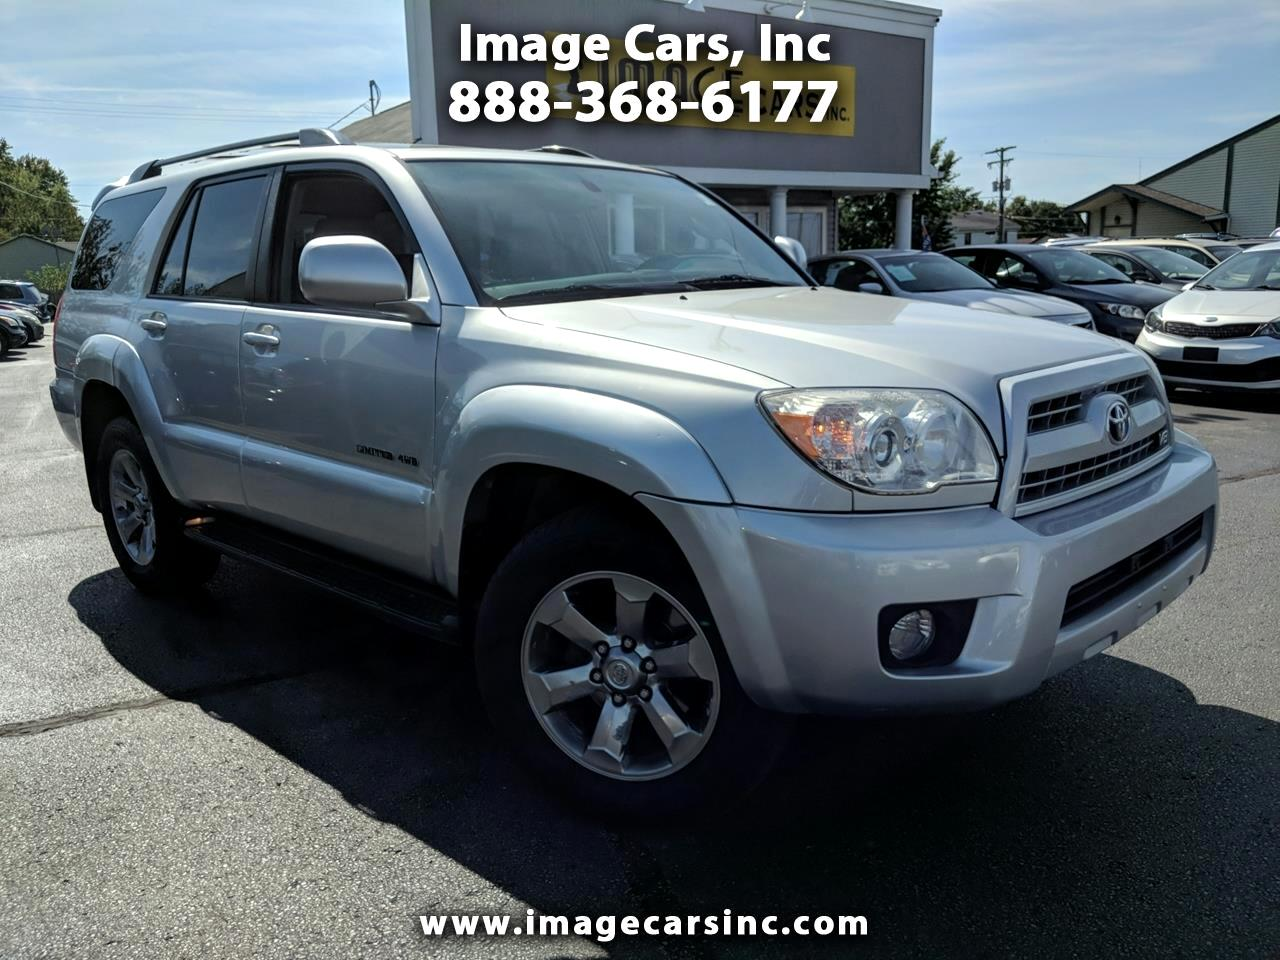 2006 Toyota 4runner 4WD LIMITED